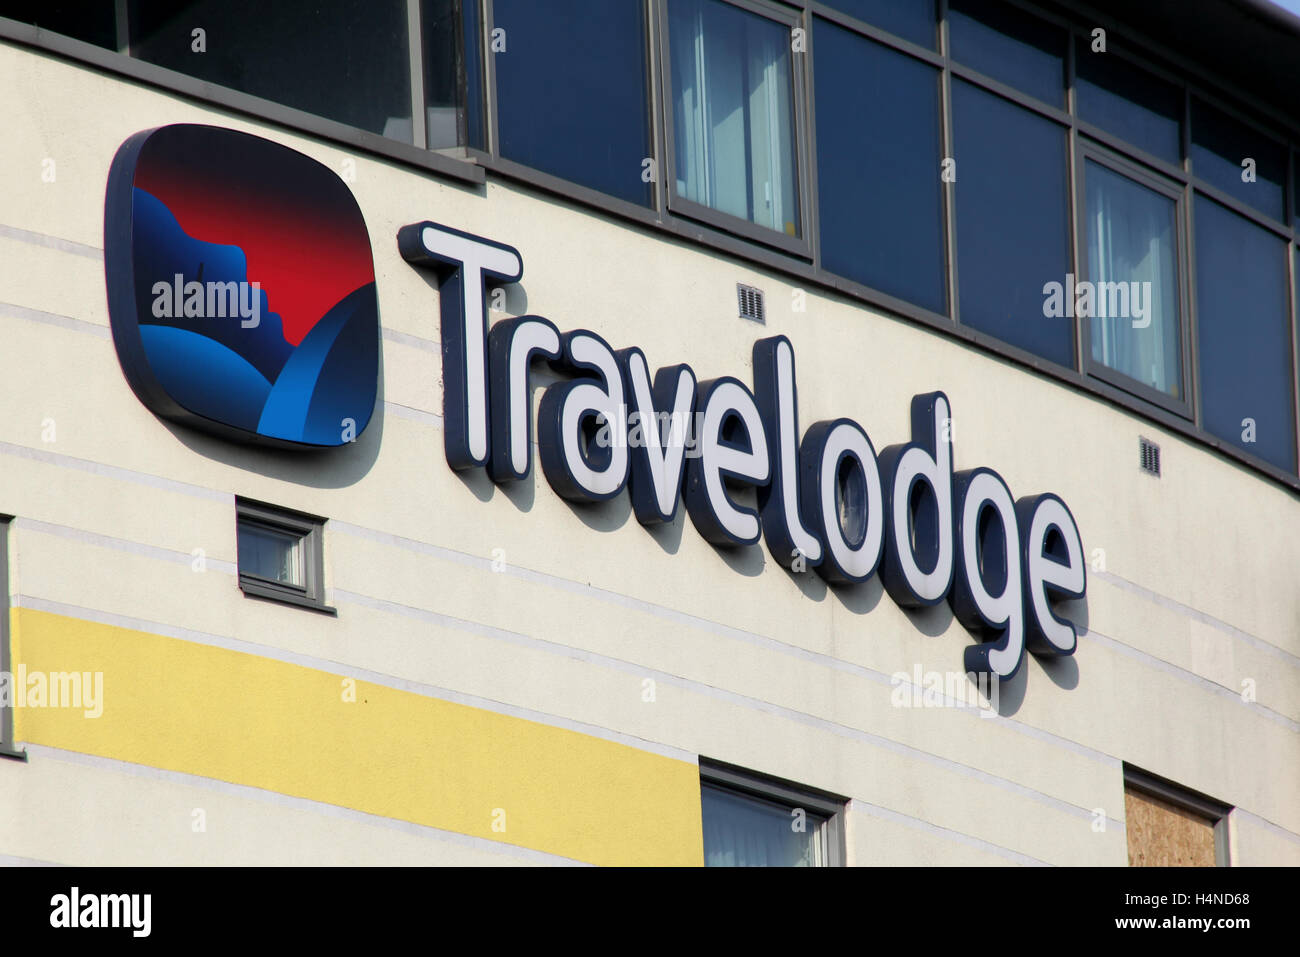 Travelodge Hotel sign, Army & Navy roundabout, Chelmsford, Essex - Stock Image